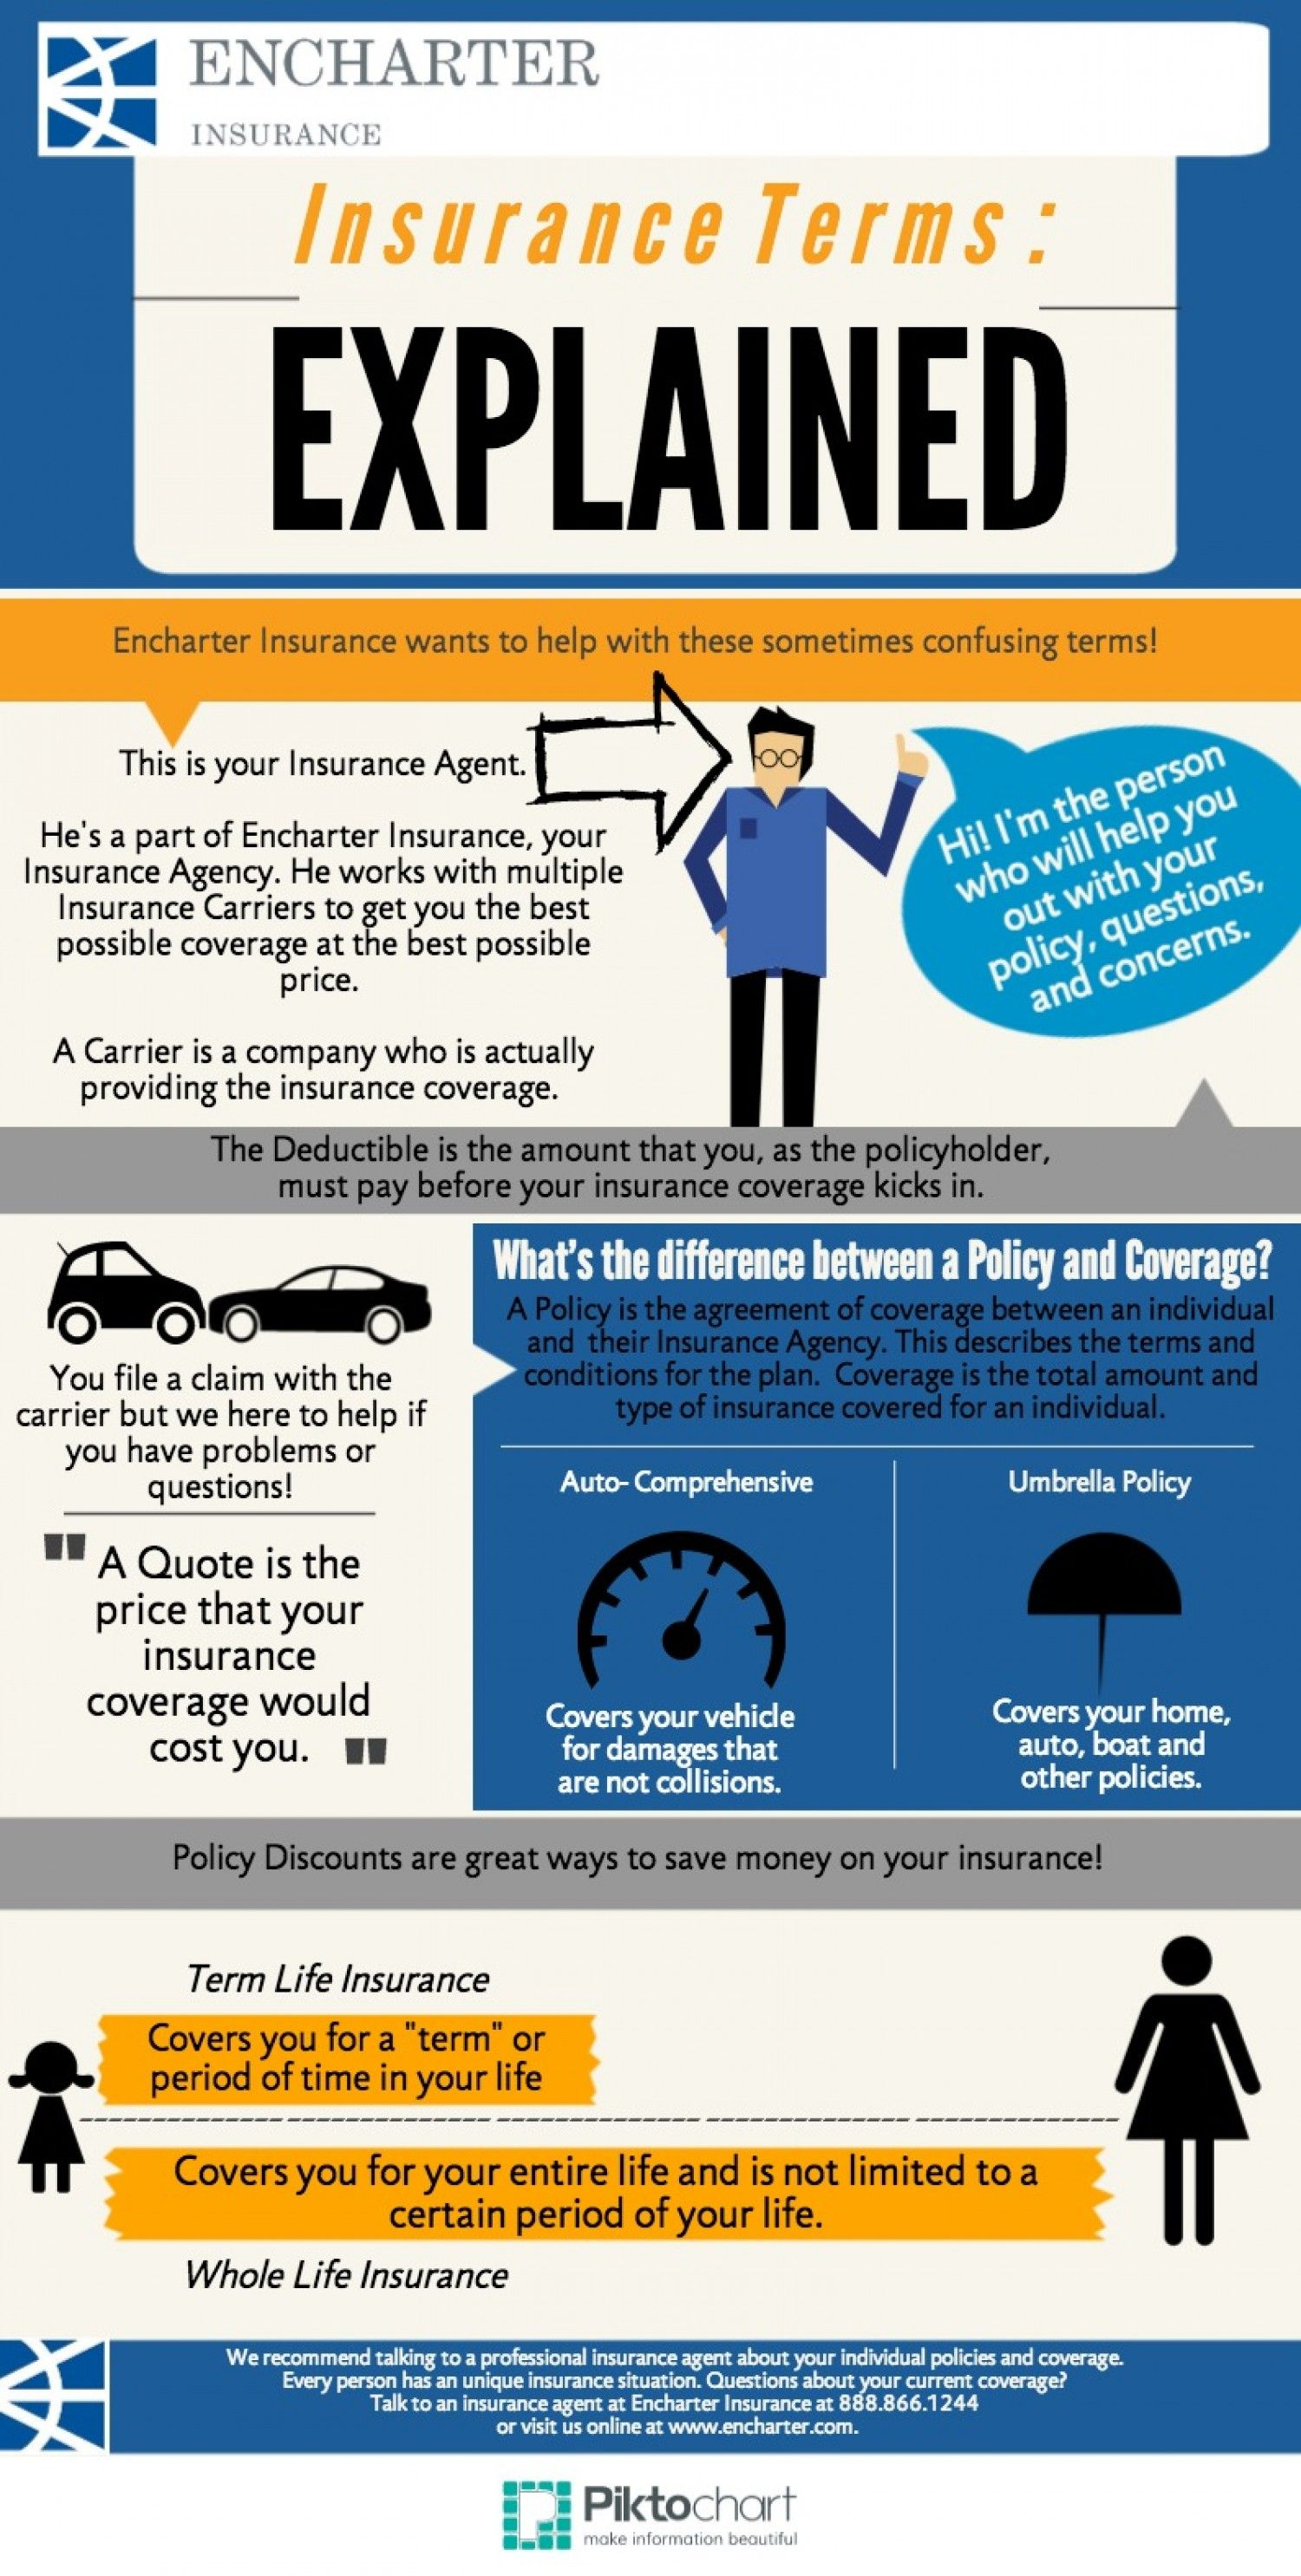 Insurance Terms Explained Business Infographic This Or That